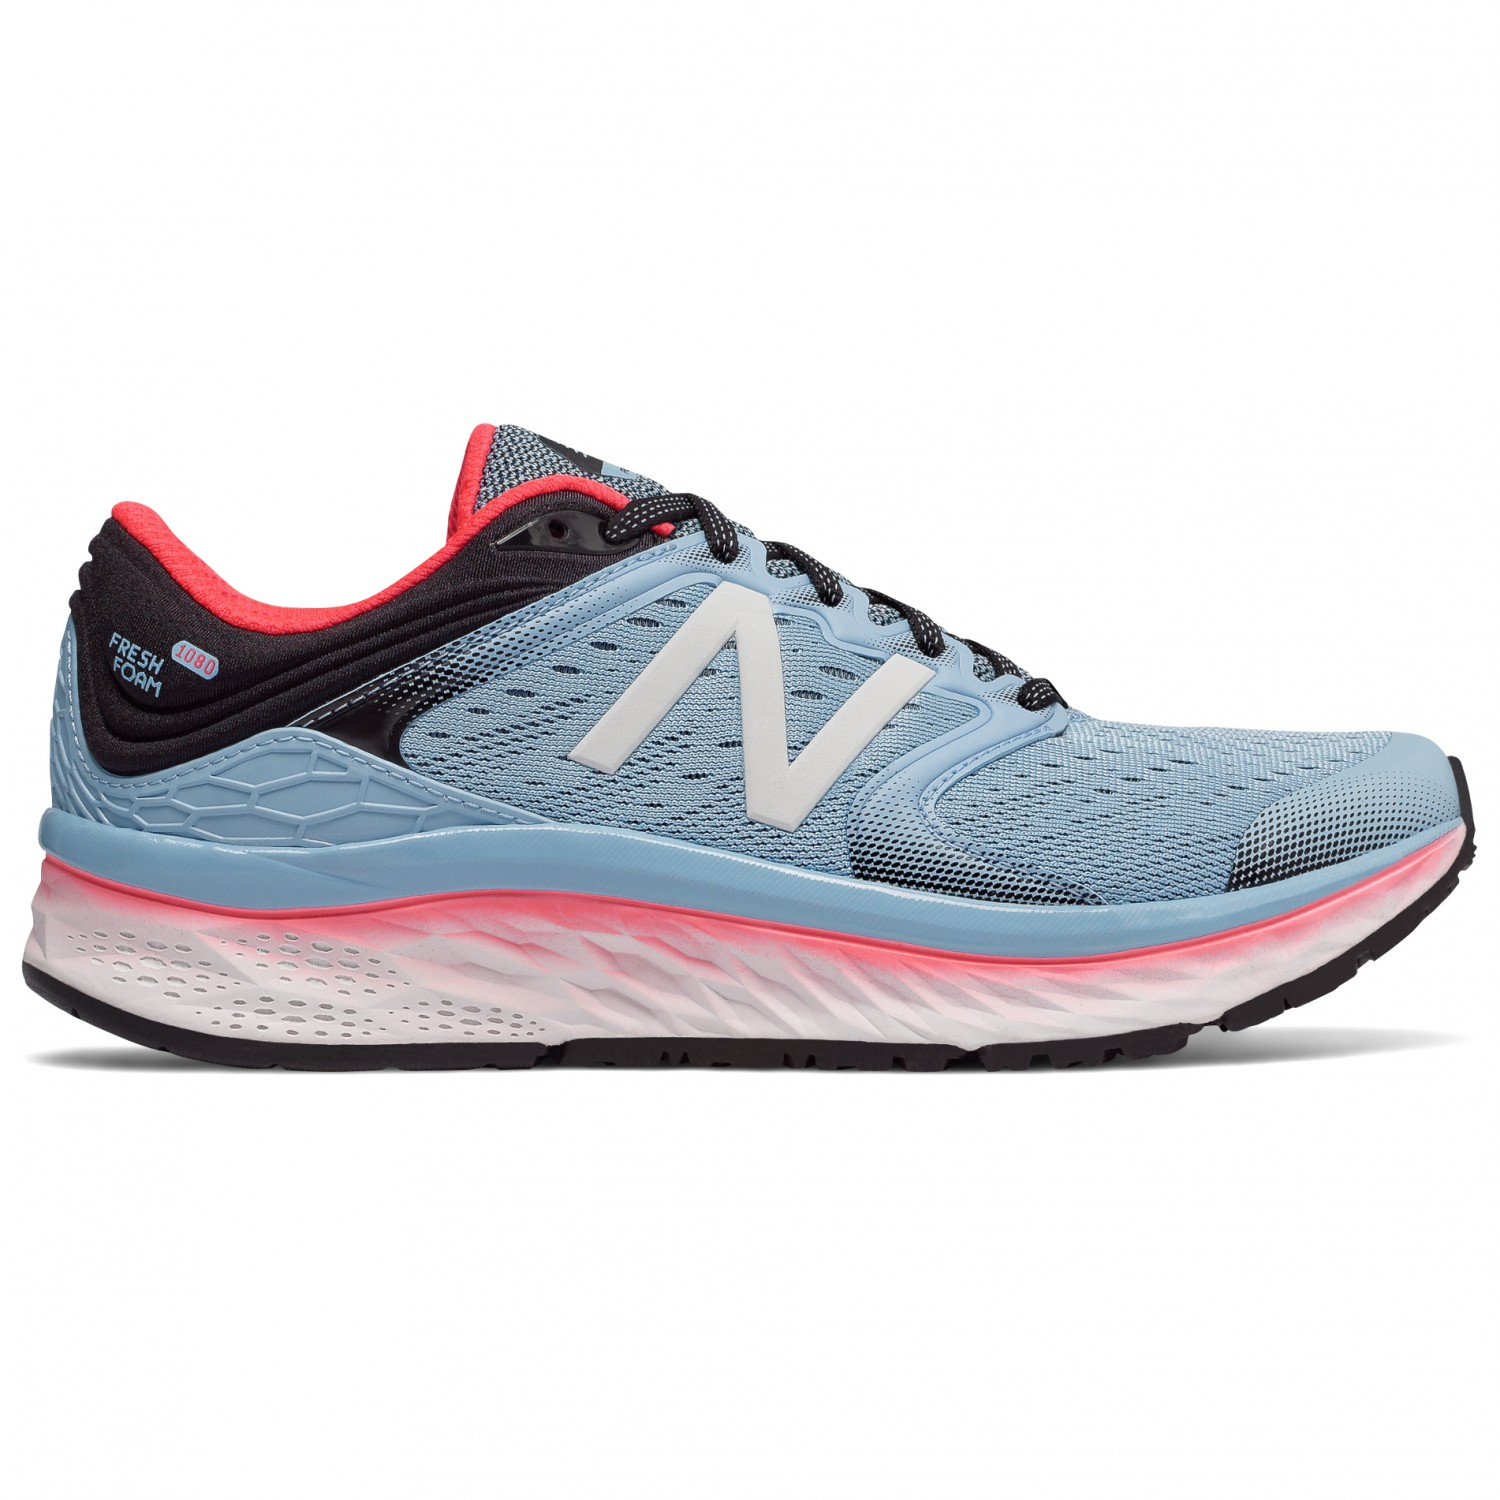 93b851f817448 New Balance 1080 V8 - Running Shoes Women's | Free UK Delivery ...